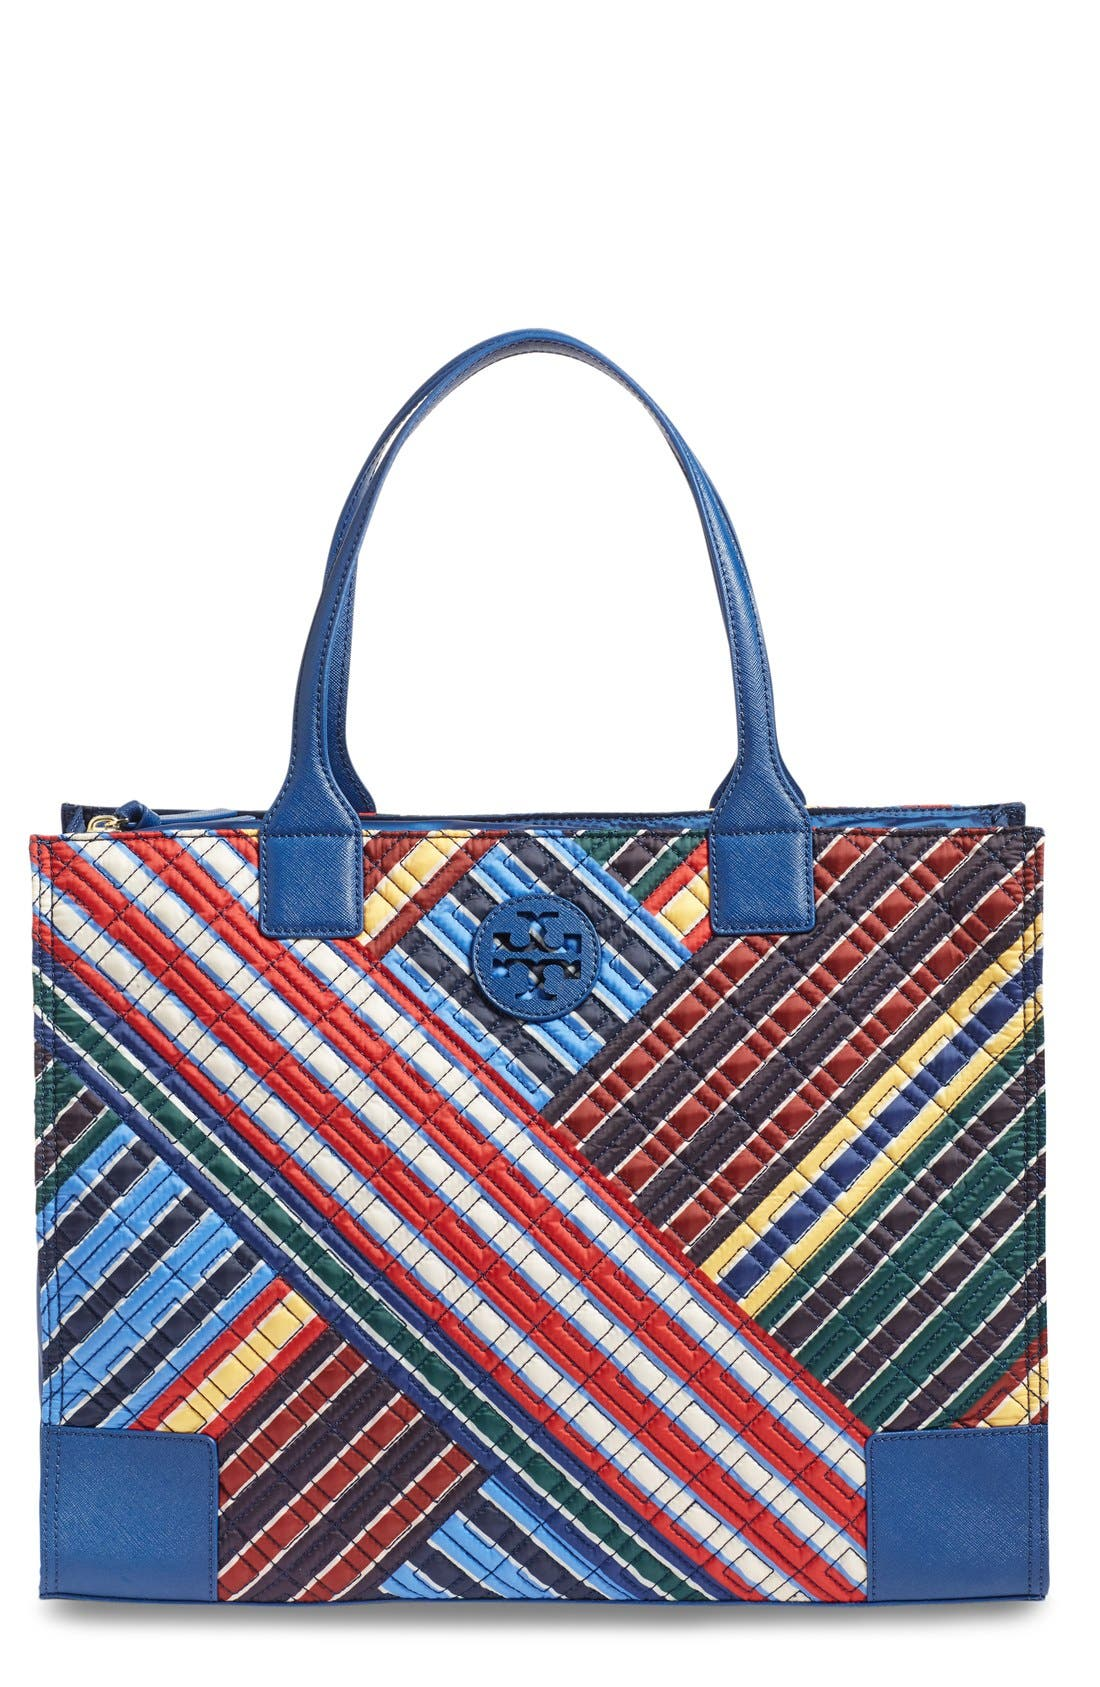 Main Image - Tory Burch 'Ella - Quilted Stripe' Tote